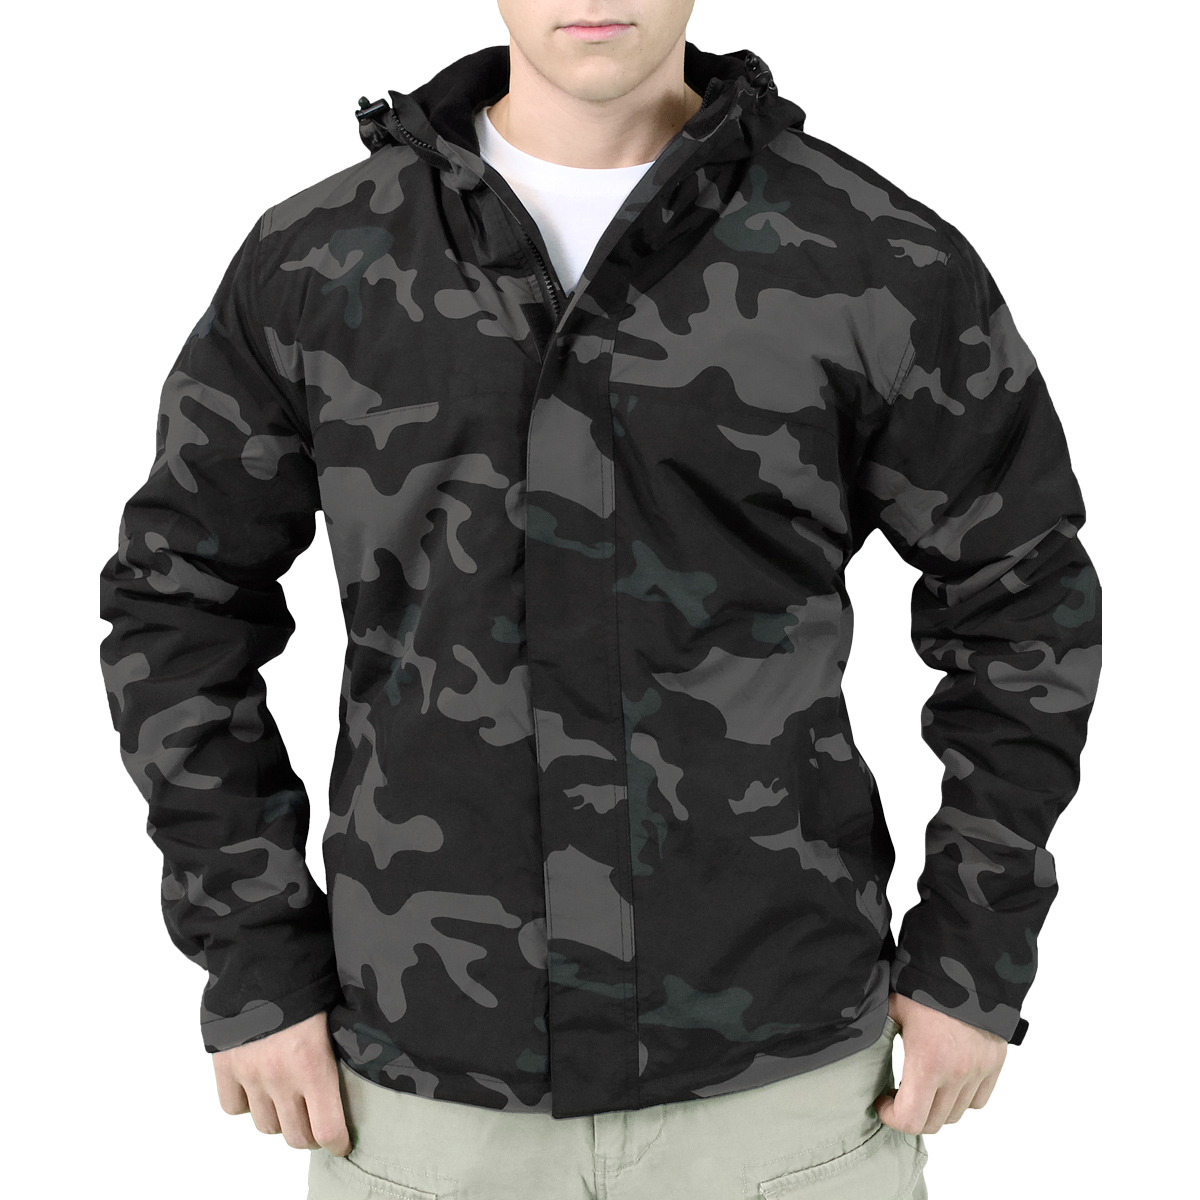 Find the lowest prices for men's camo jackets here at eBay and say goodbye to struggling to get out of an unfashionable rut. Shop the extensive inventory of men's clothing and men's military coats and jackets!